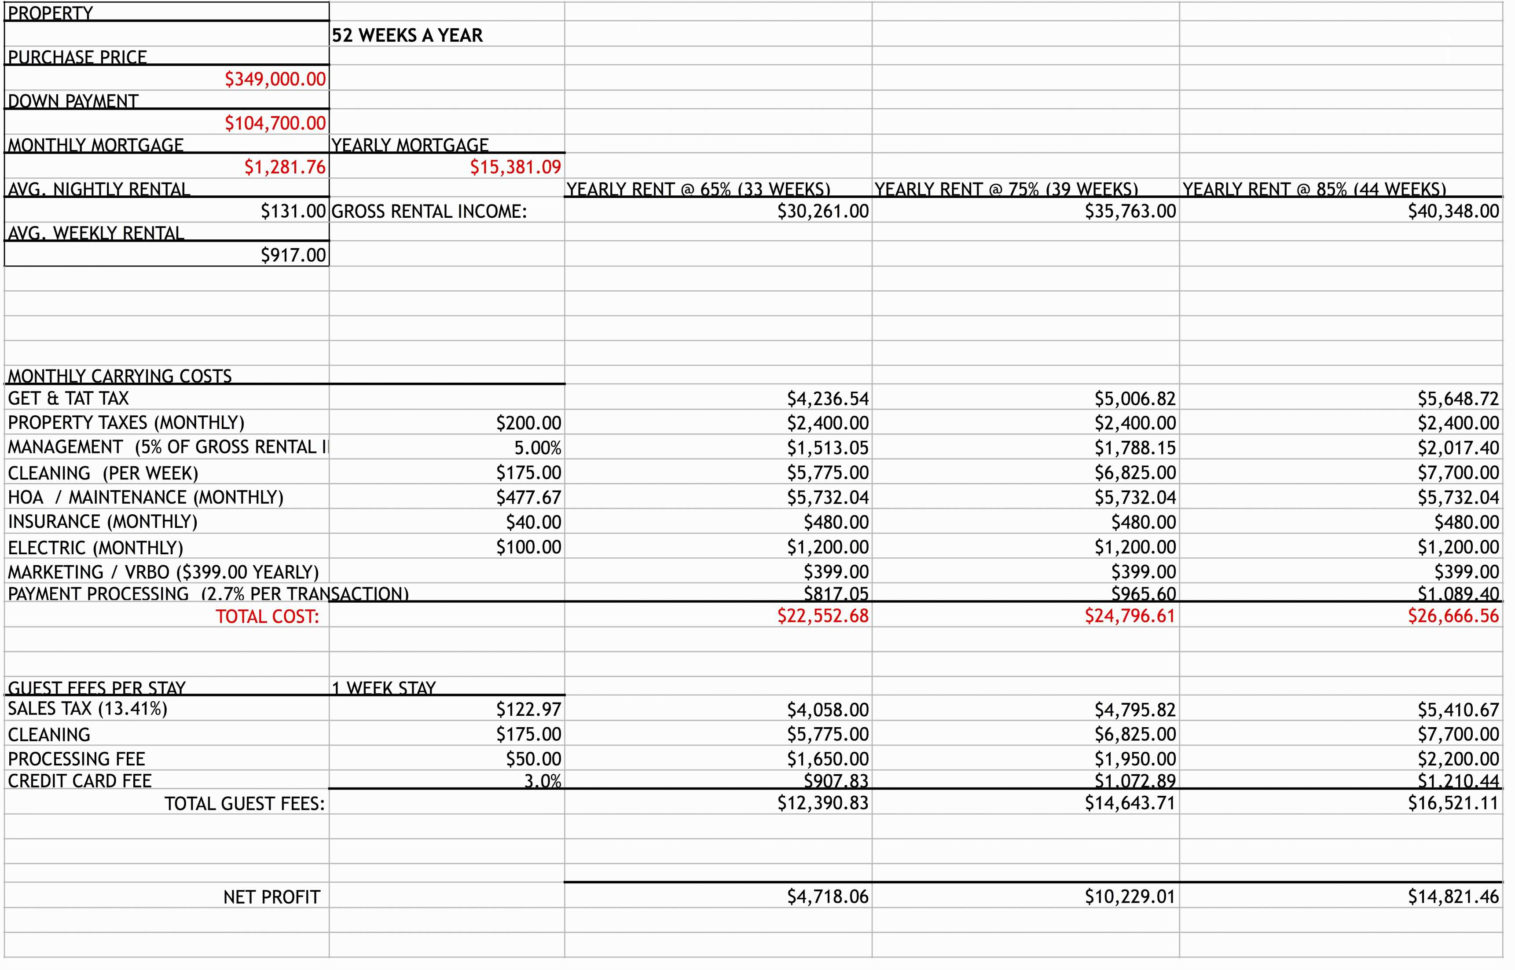 Roi Spreadsheet Pertaining To Real Estate Investment